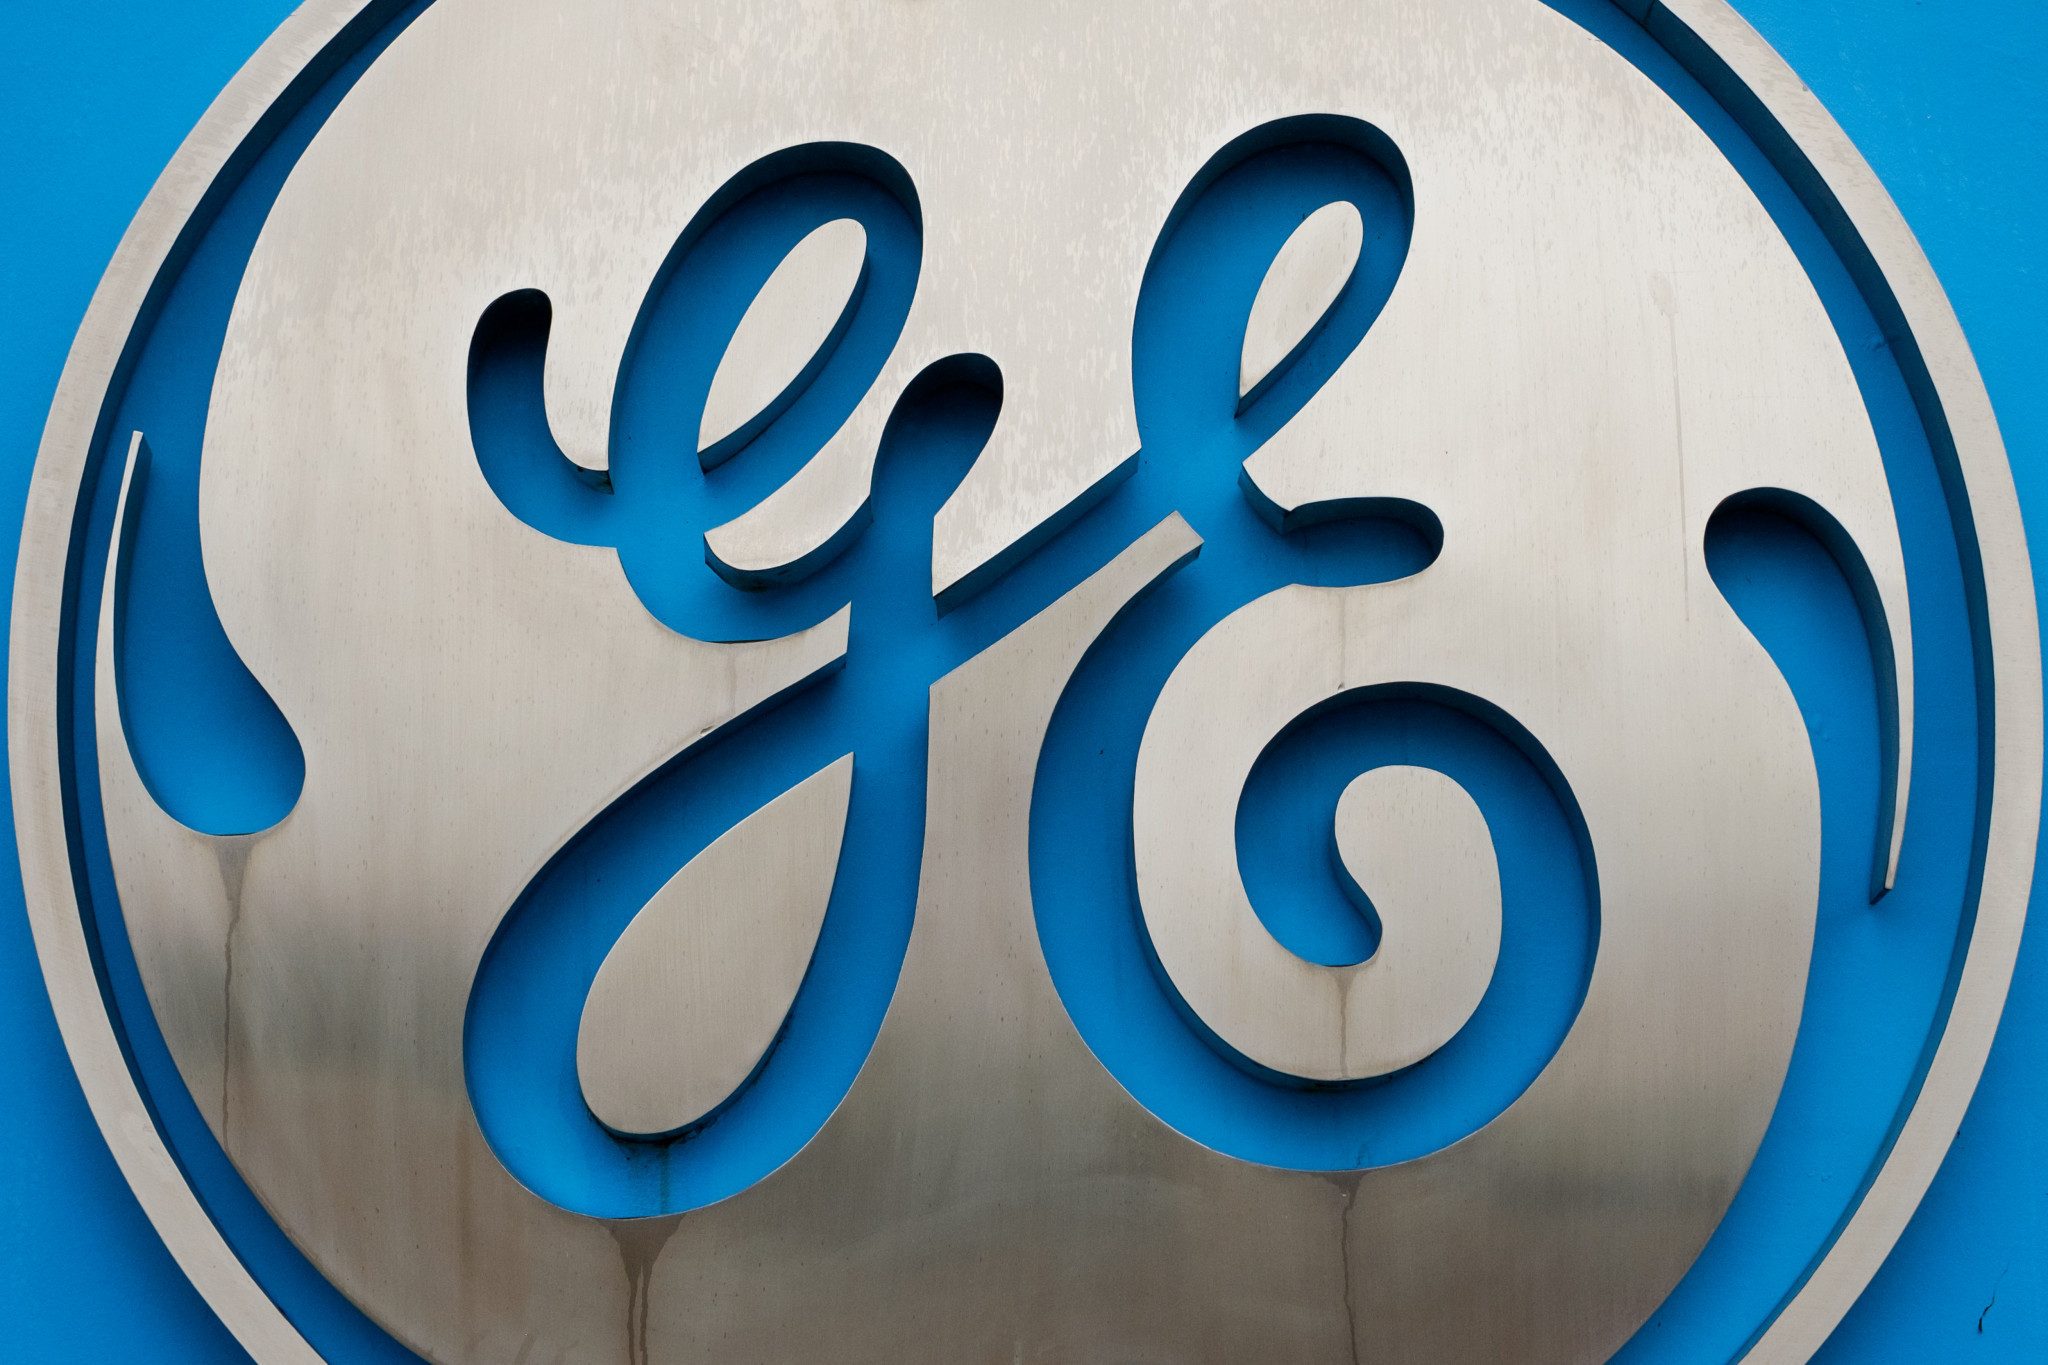 GE restructure may raise questions over post-2020 TOP sponsorship